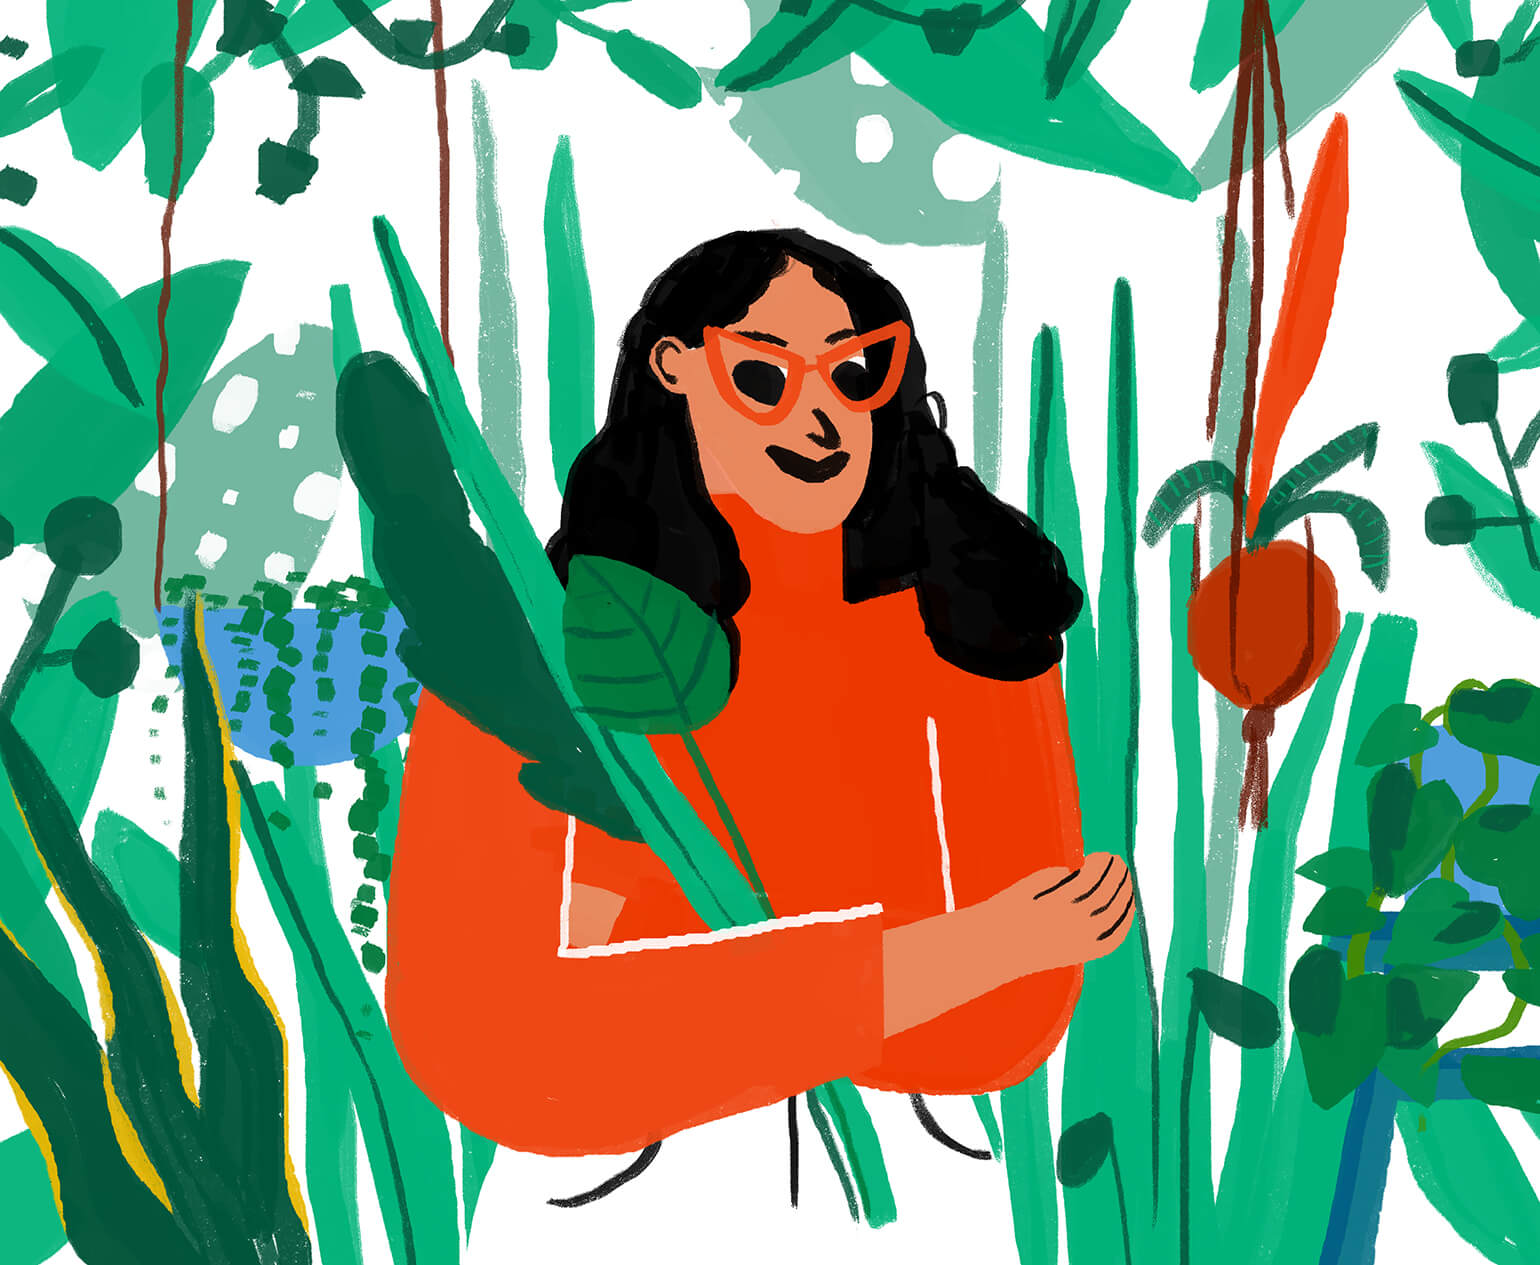 self-portrait-houseplants-woman